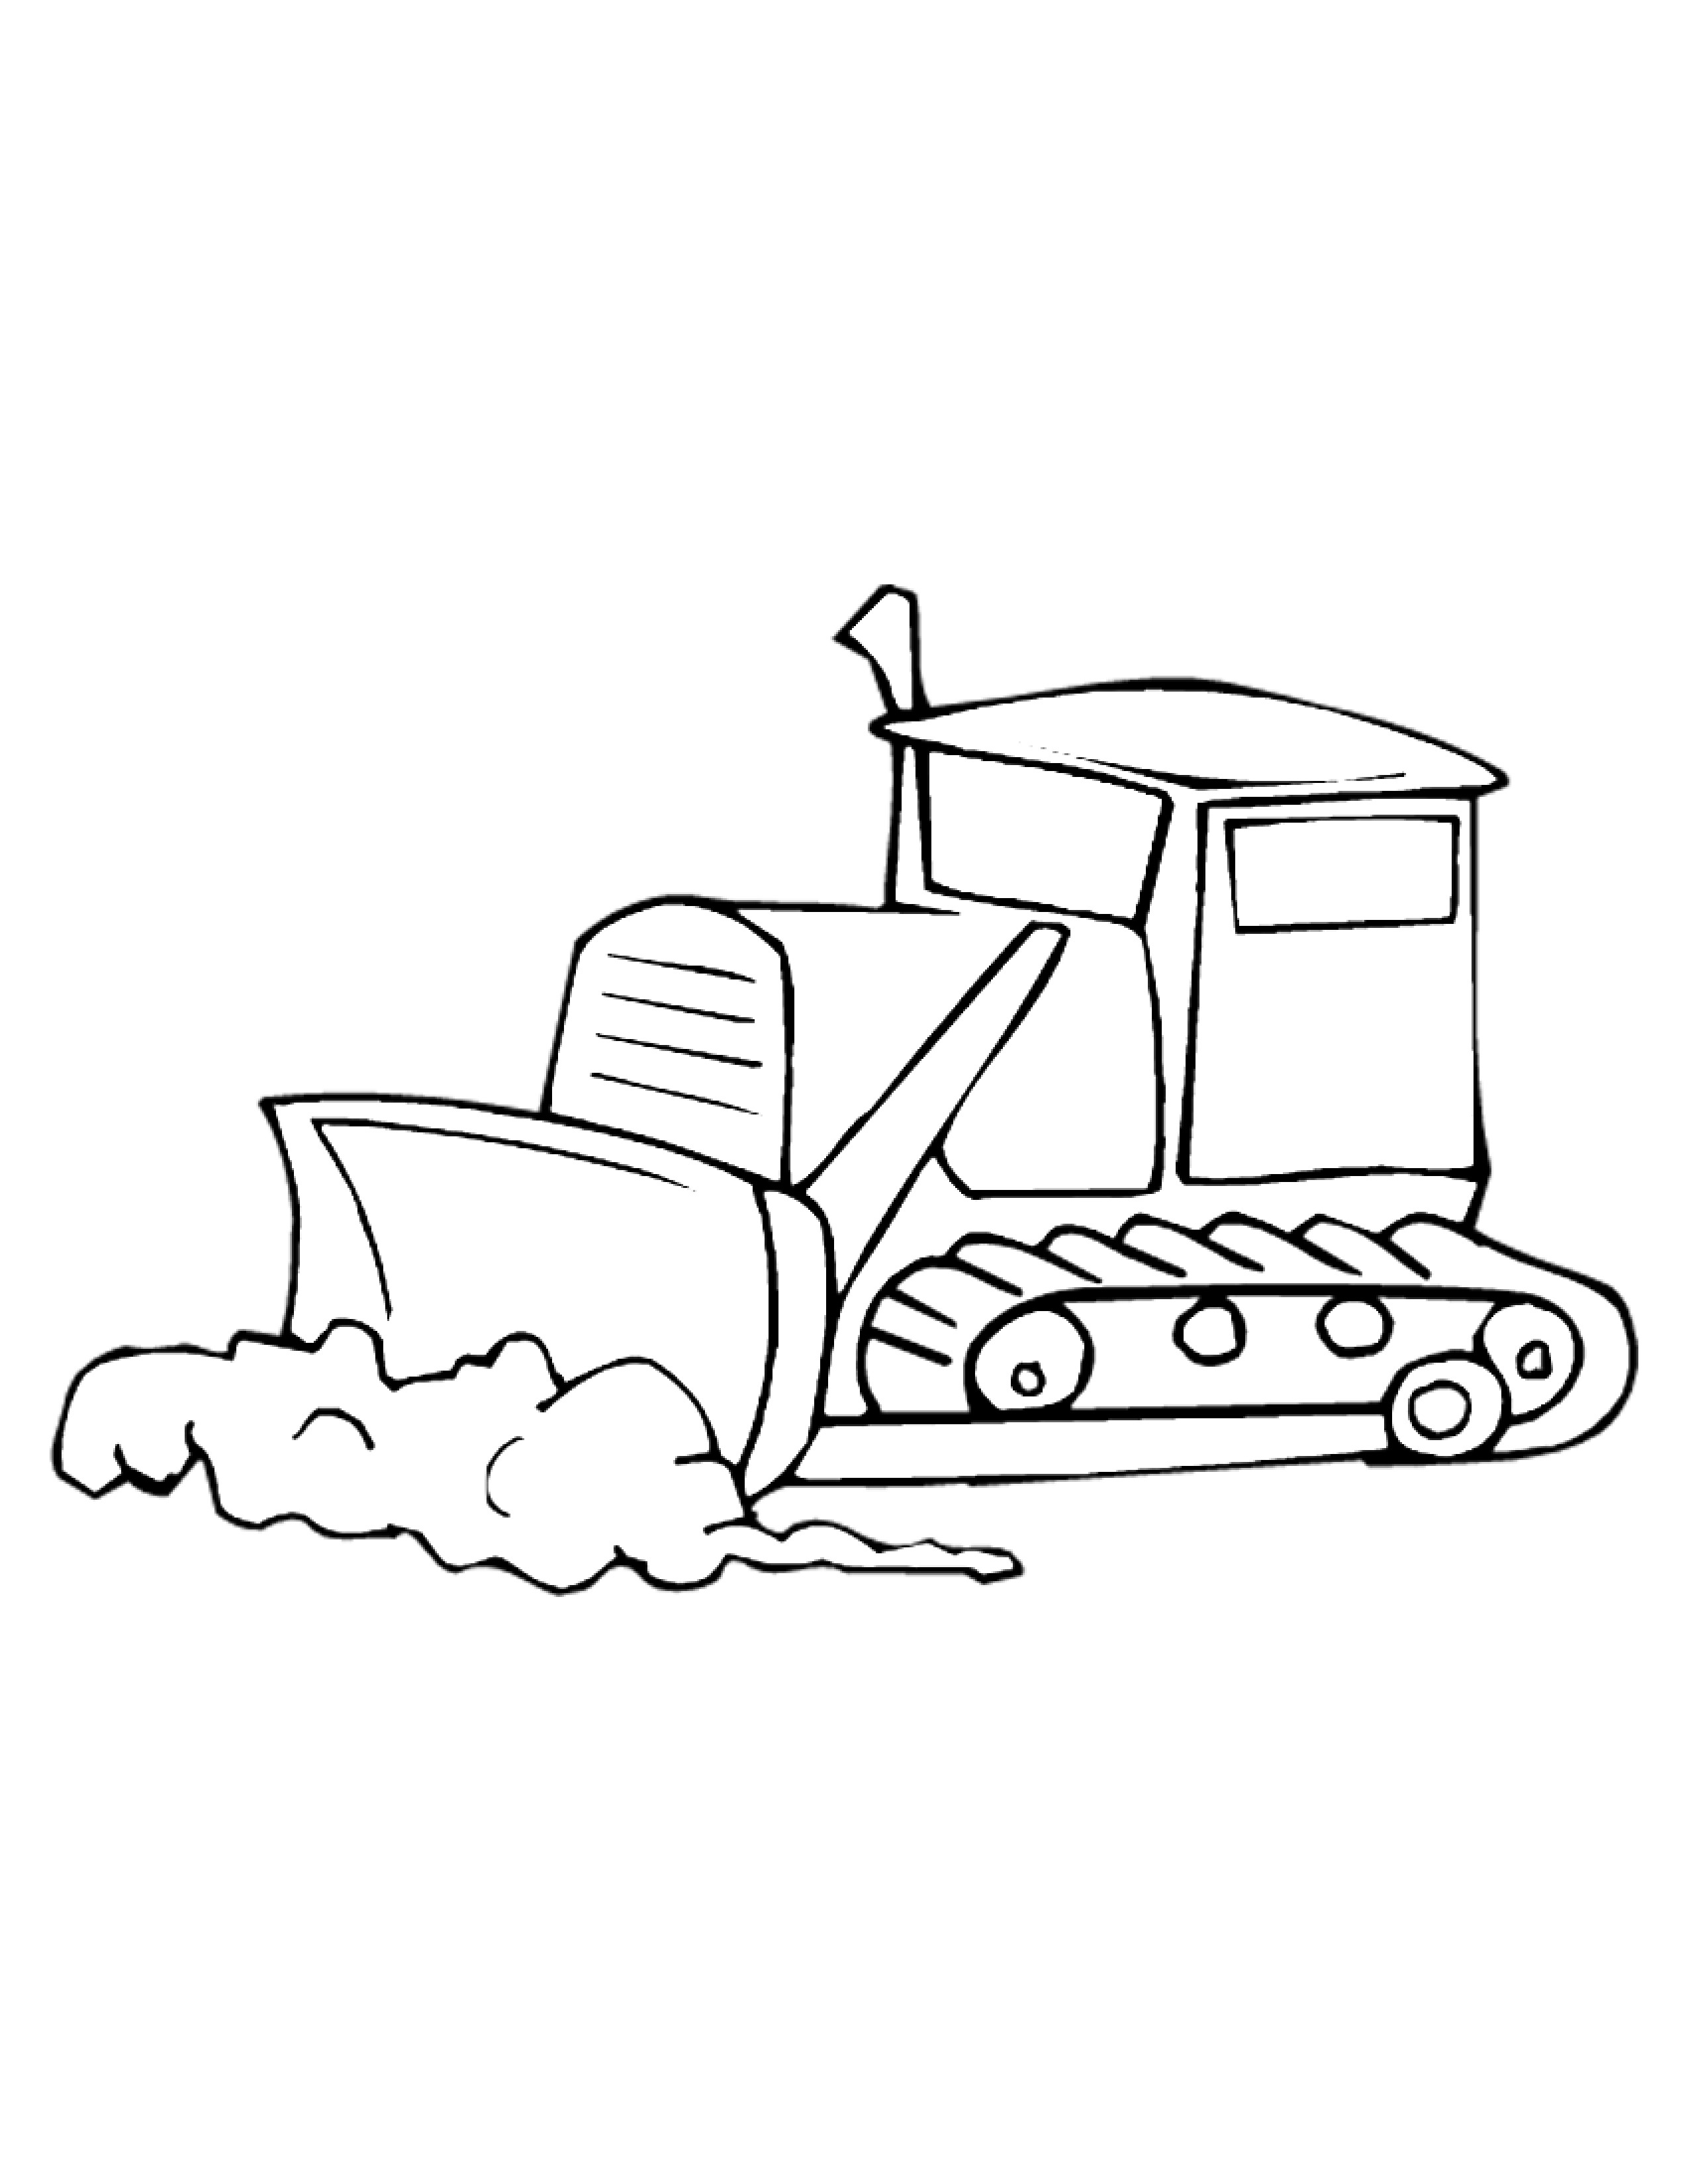 construction equipment coloring pages construction equipment coloring pages coloring pages for pages equipment coloring construction 1 1